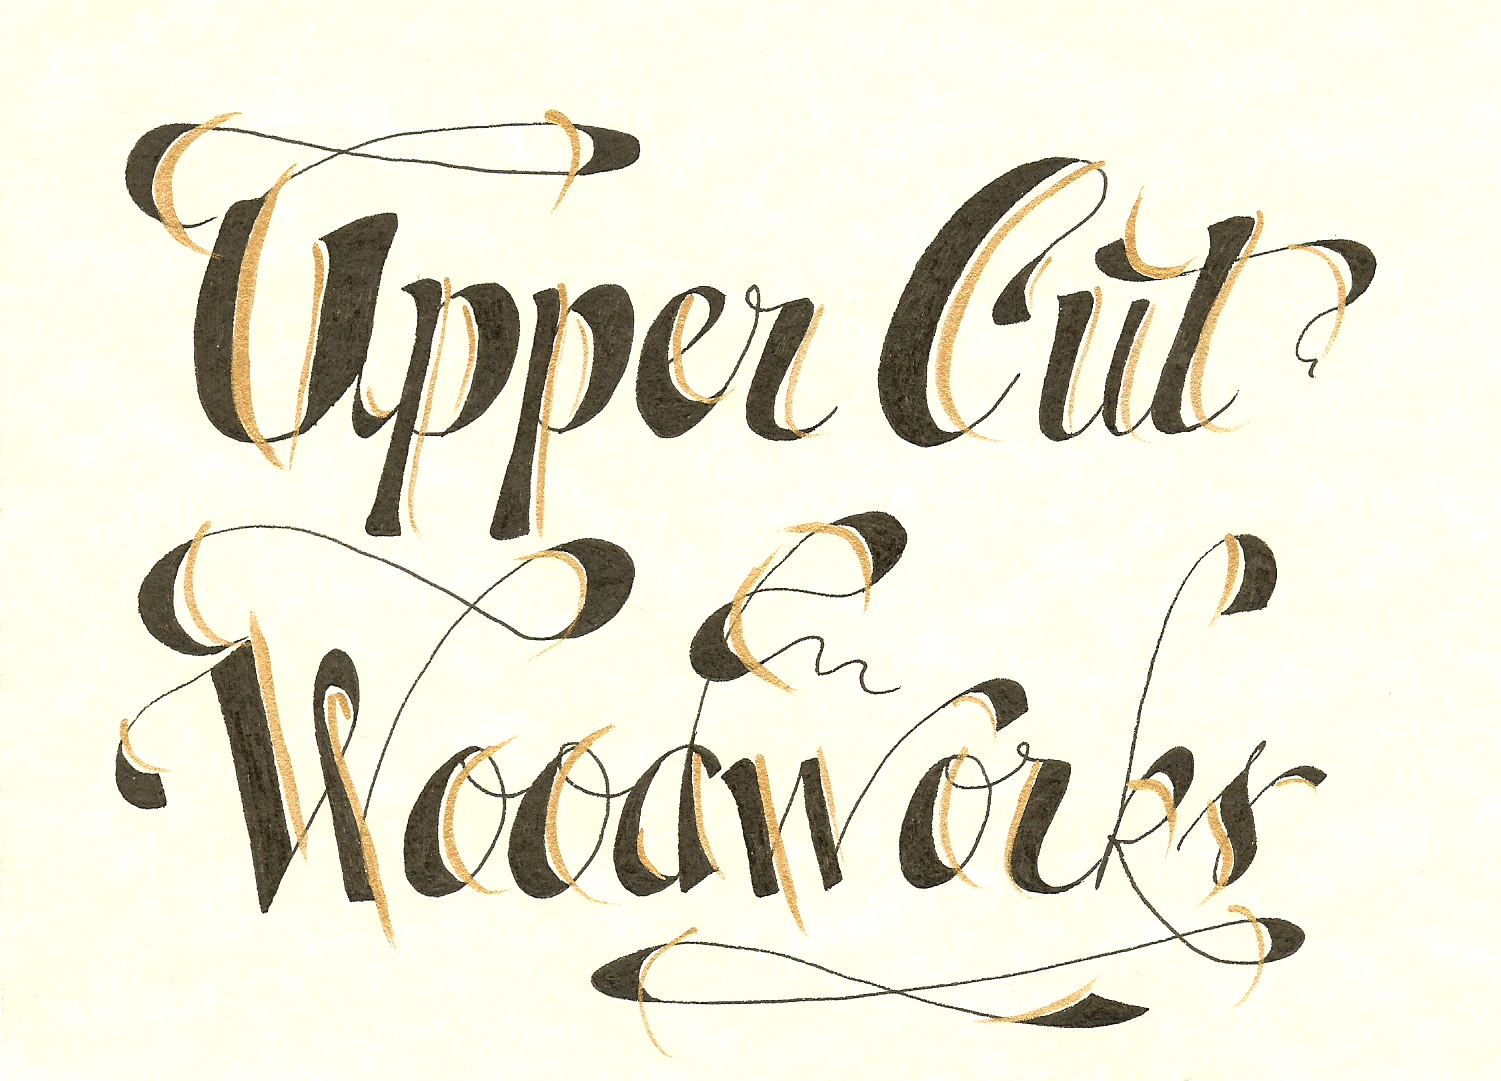 Upper Cut Woodworks Calligraphy Logo from fiverr.com